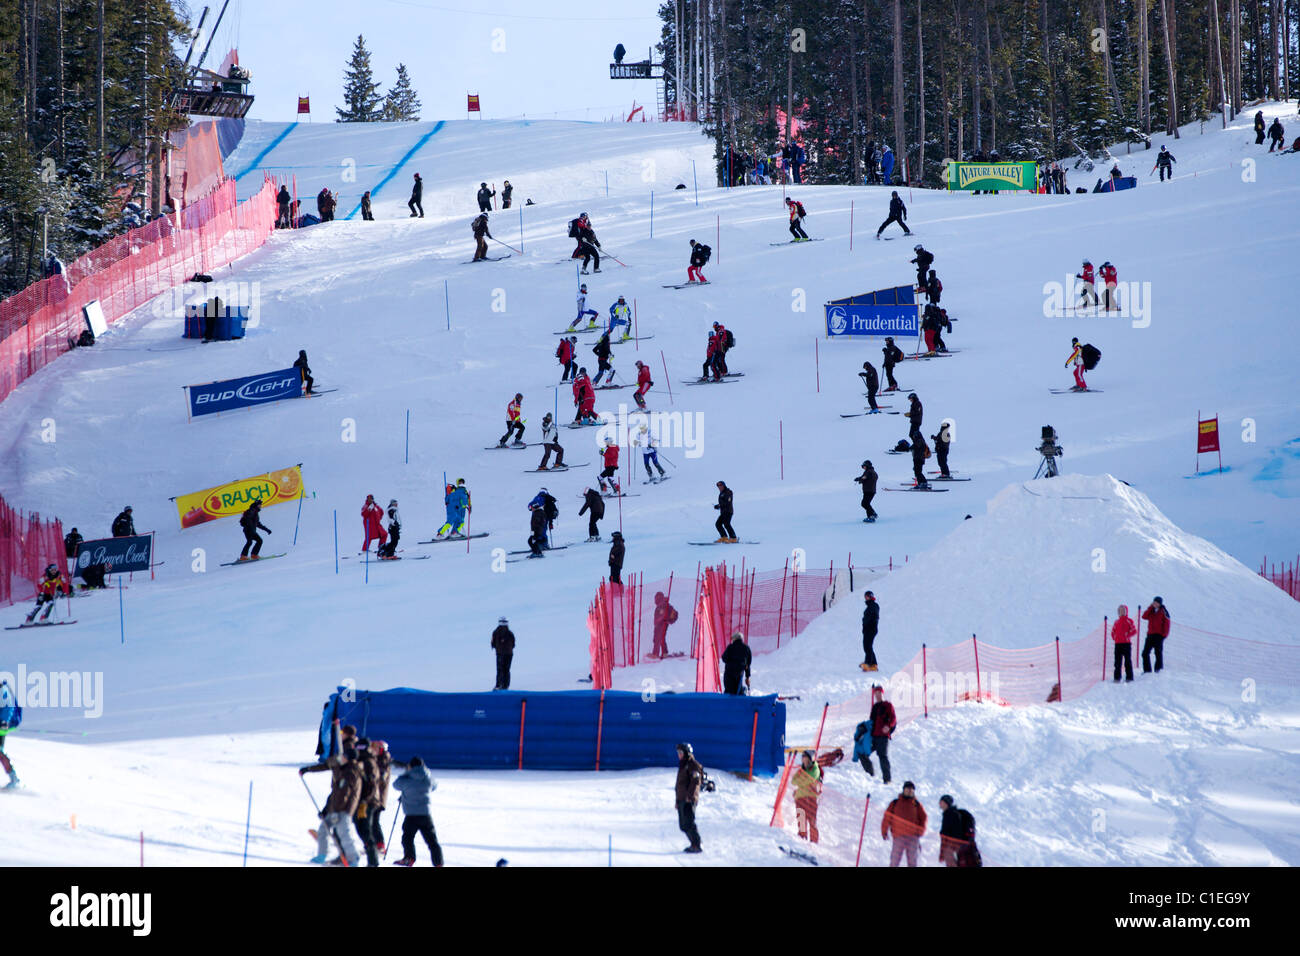 Skiers inspecting the slalom course in Beaver Creek - Stock Image